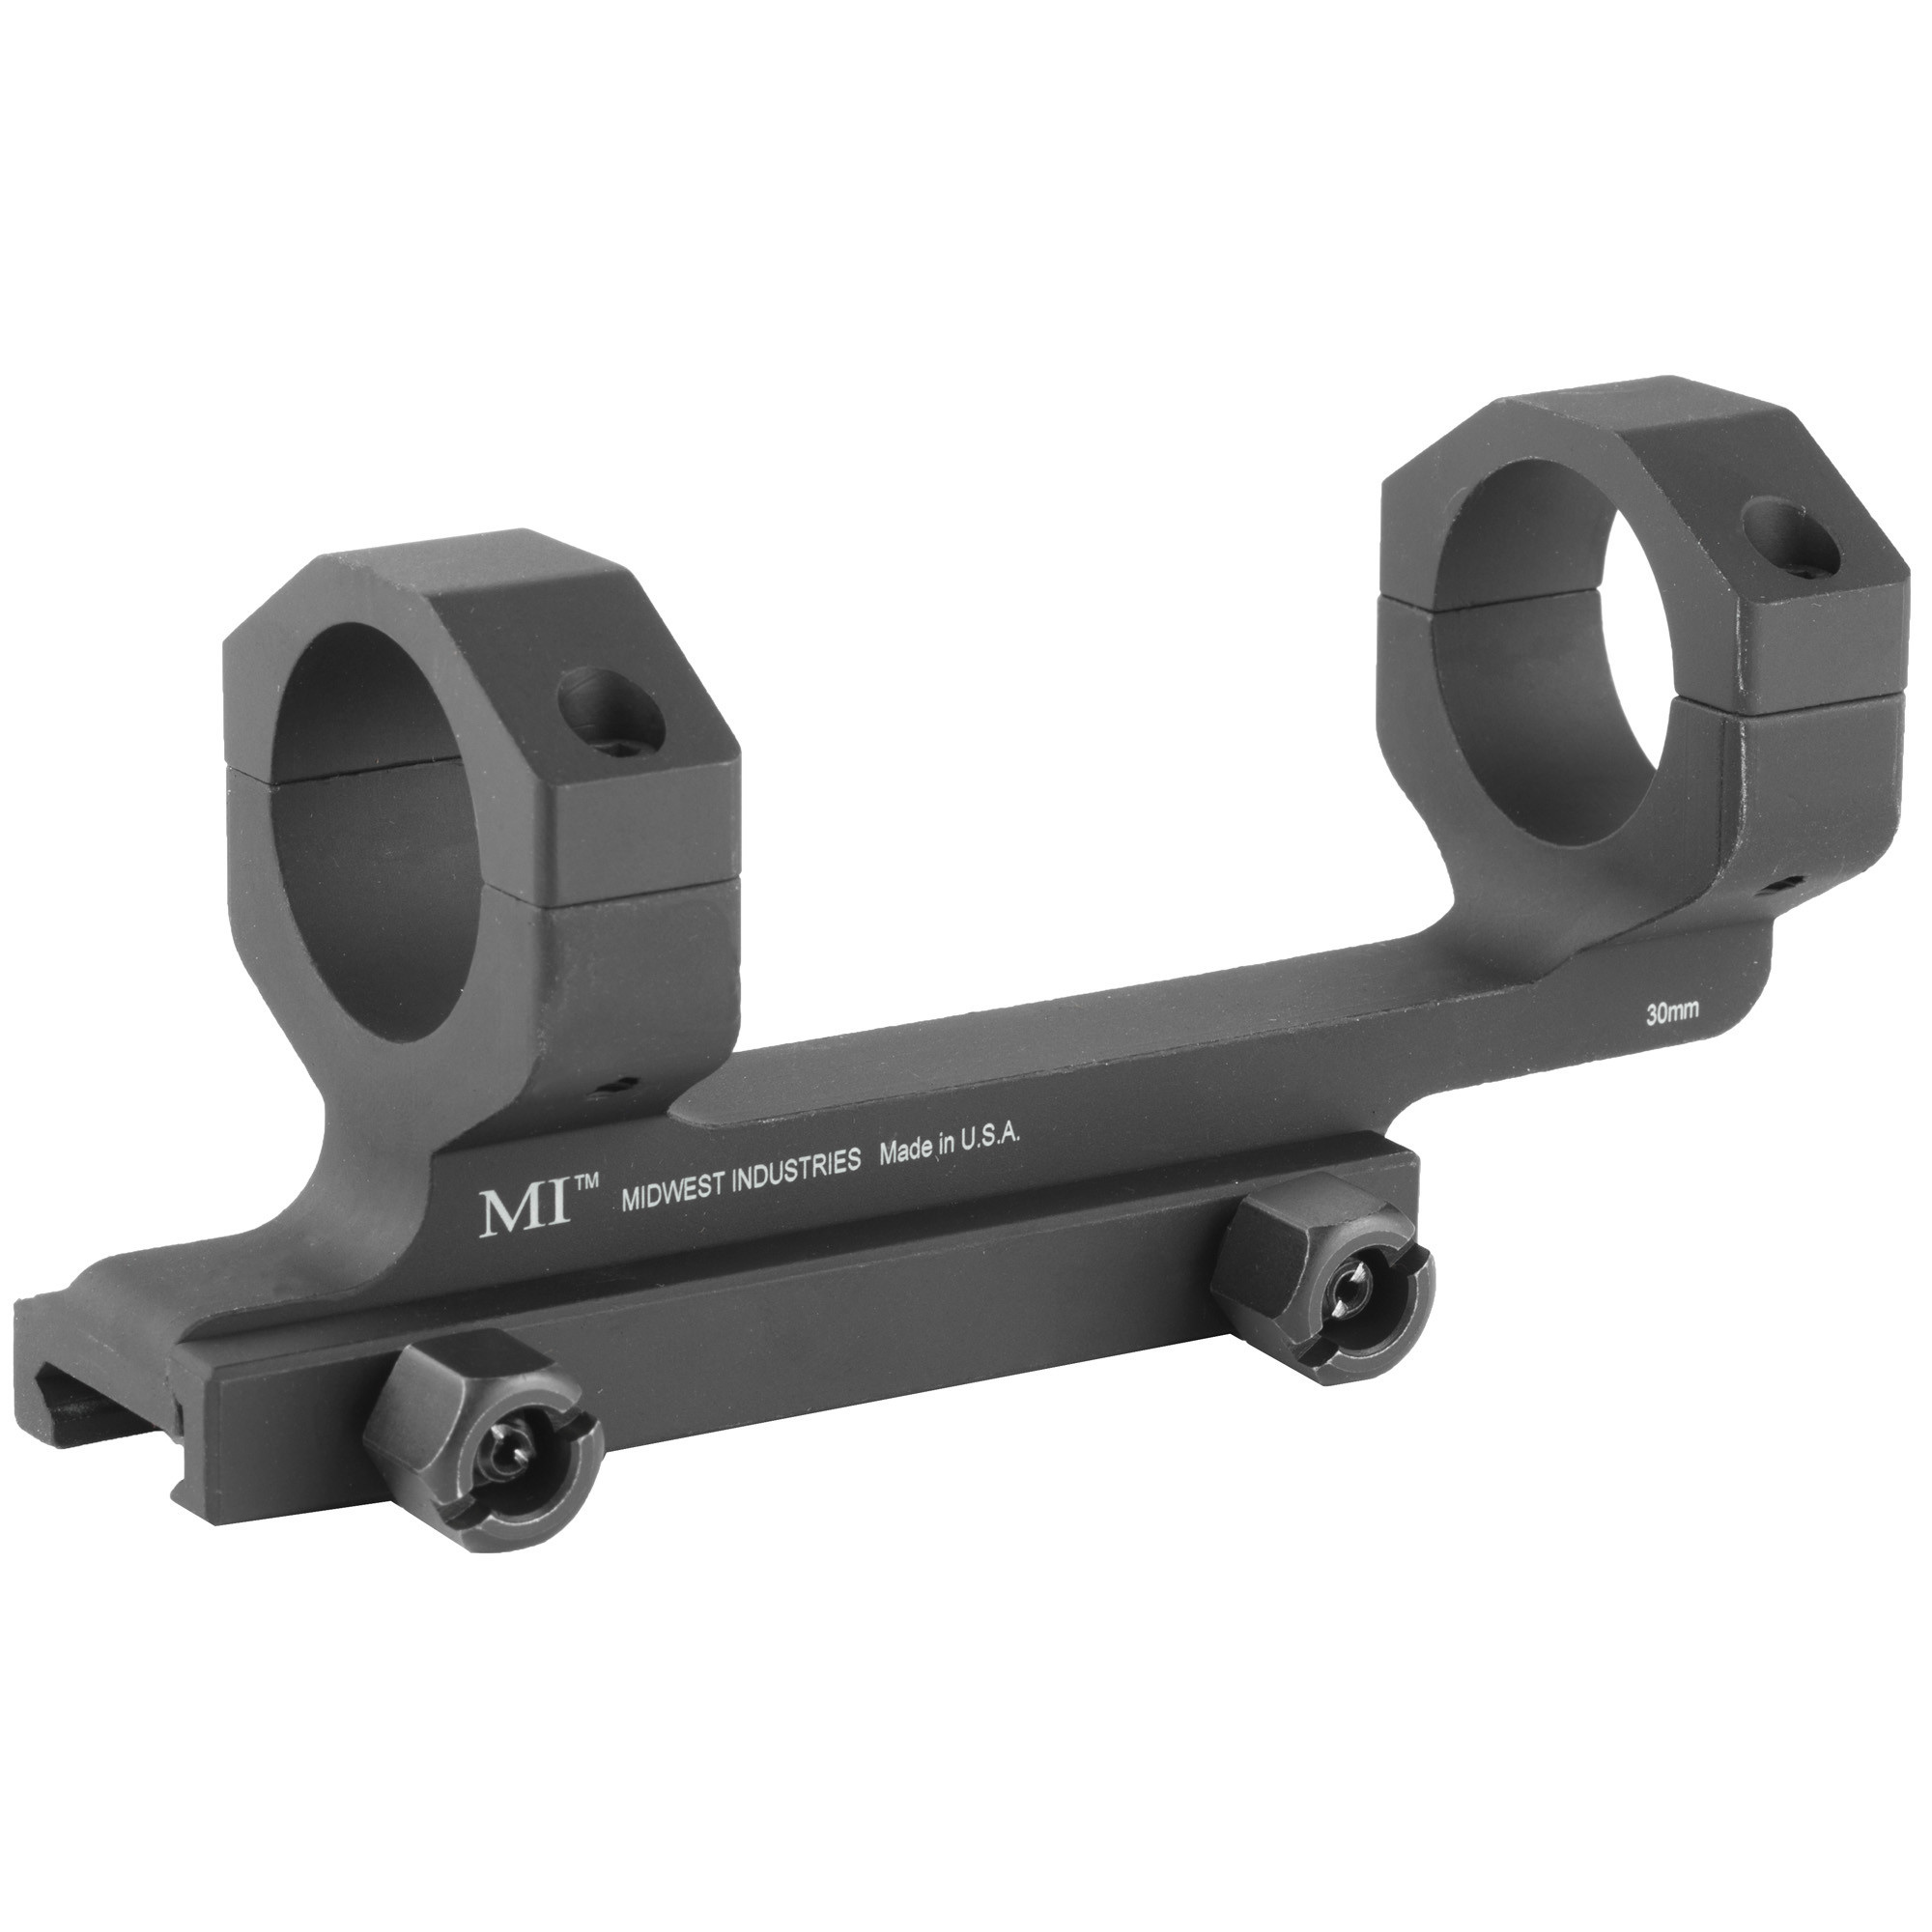 Midwest Industries 30mm AR Scope Mount